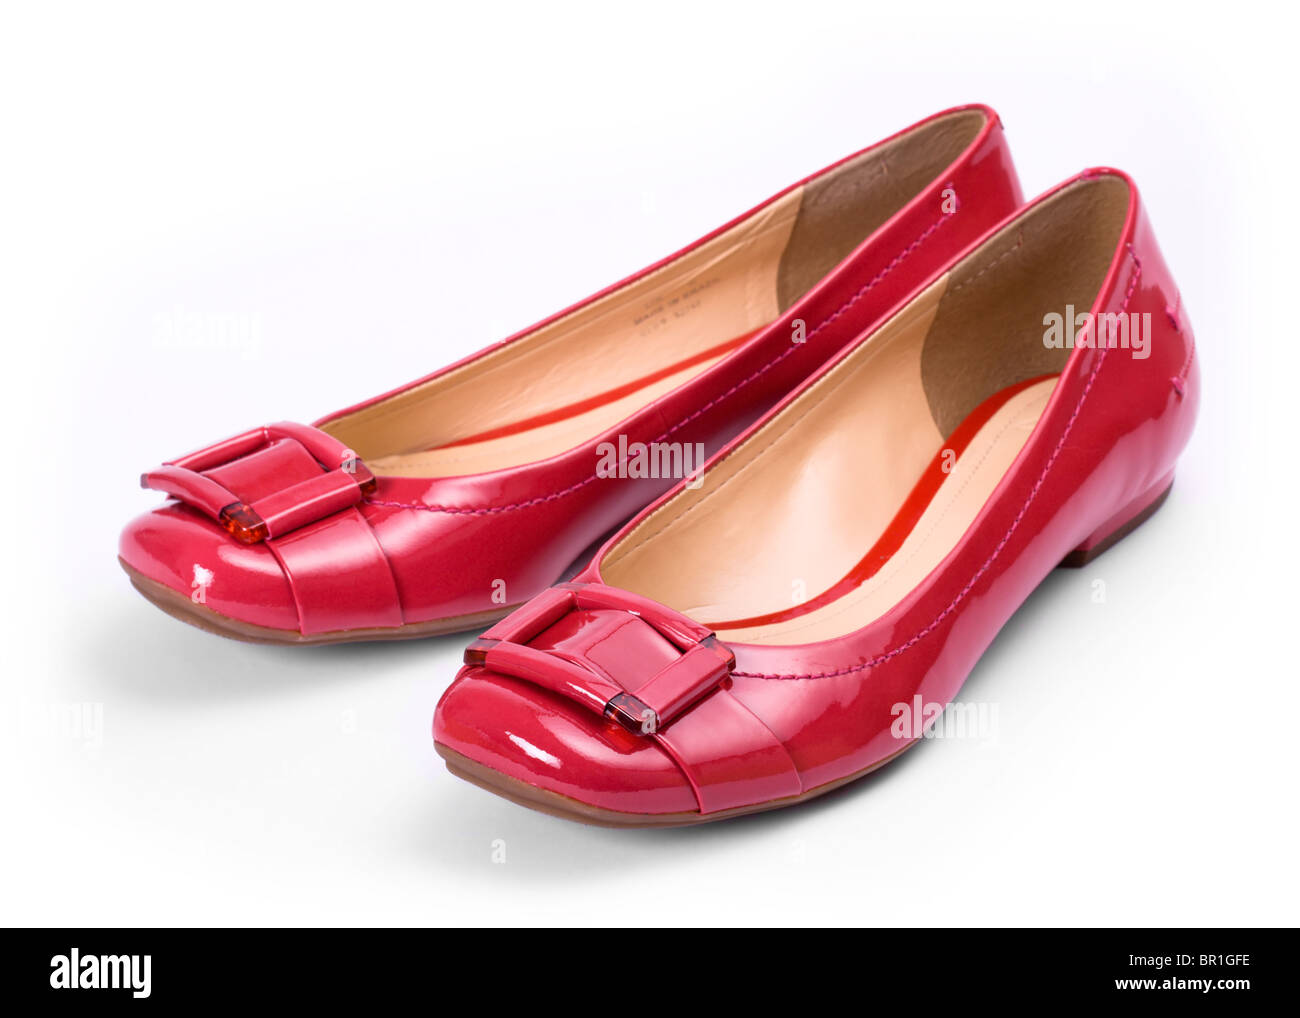 Red shoes - Stock Image